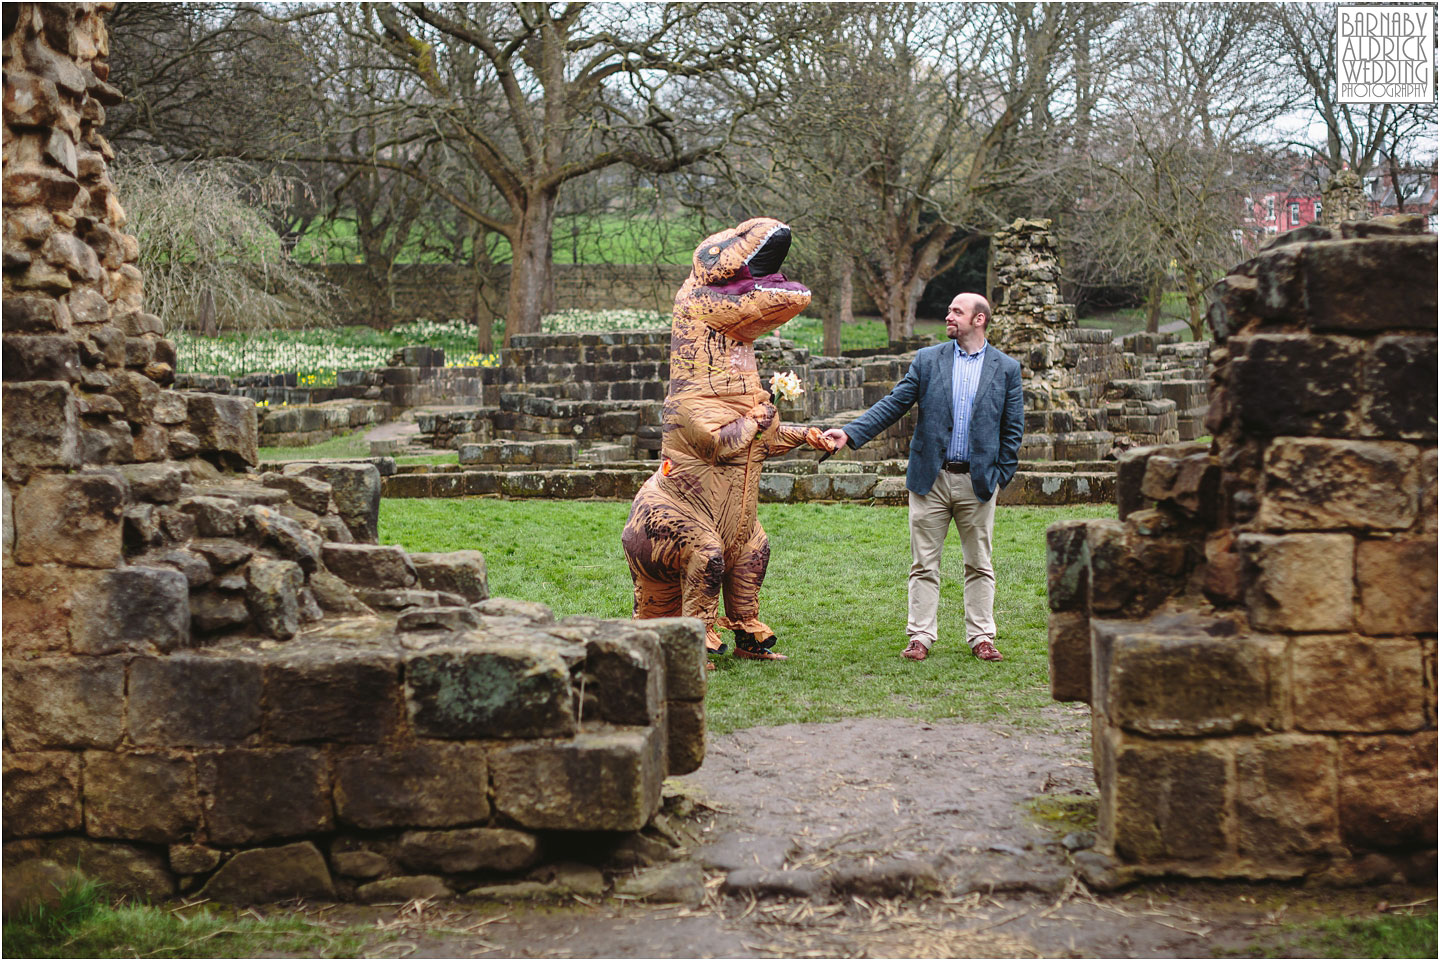 Dinosaur Fancy Dress Pre-Wedding Shoot, Dinosaur wedding outfit, Fancy dress engagement shoot ideas, T-Rex wedding outfit